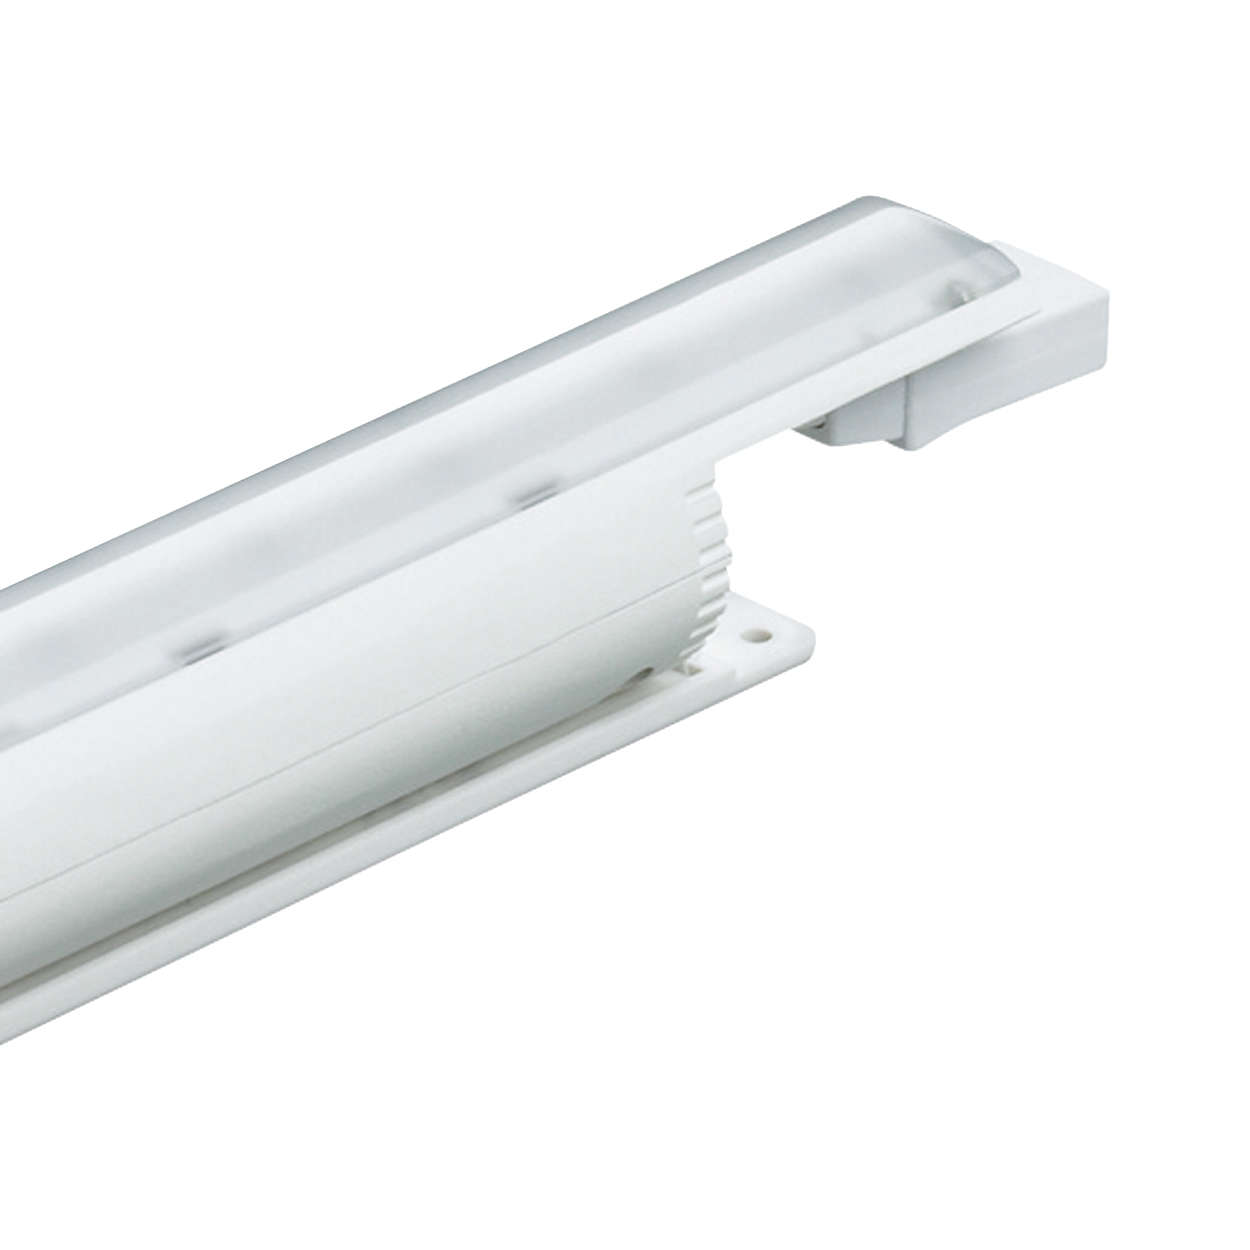 eW Cove MX Powercore Precision Dimming – maximum-output linear LED fixture for cove, general and accent lighting